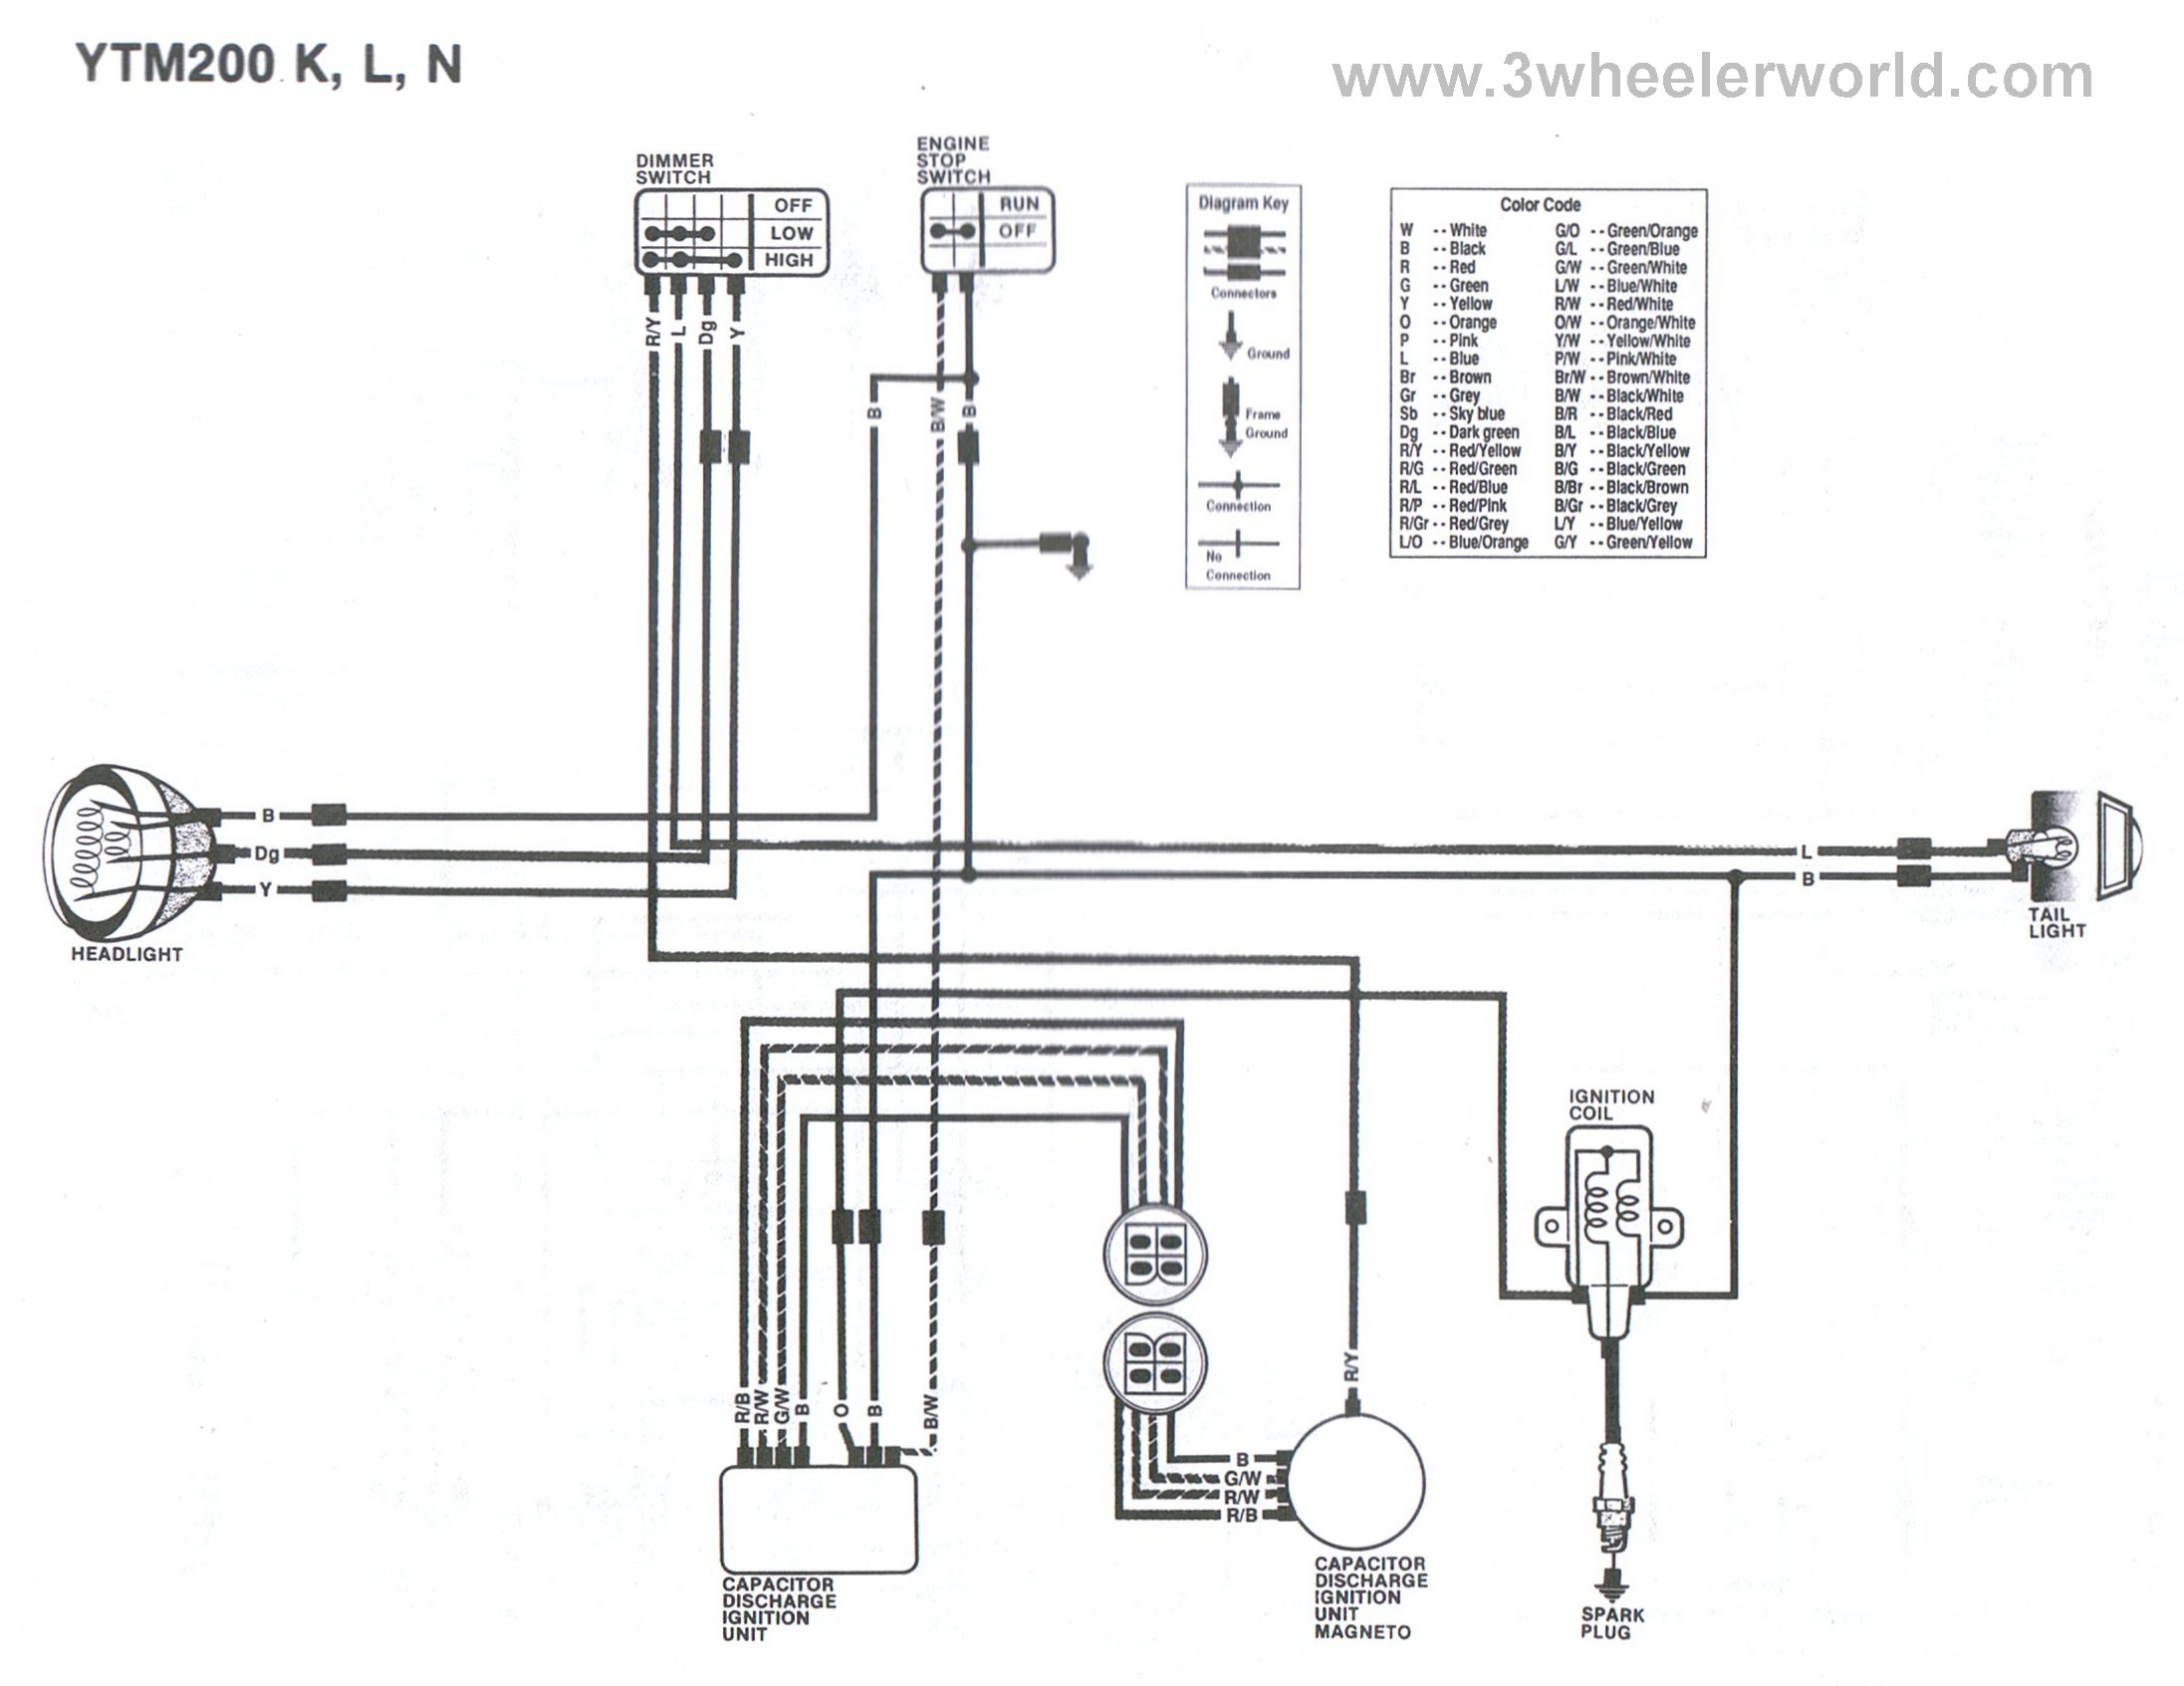 YTM200KLN ignition coil wiring diagram wiring diagram and schematic design wiring diagram for yamaha timberwolf 250 at nearapp.co